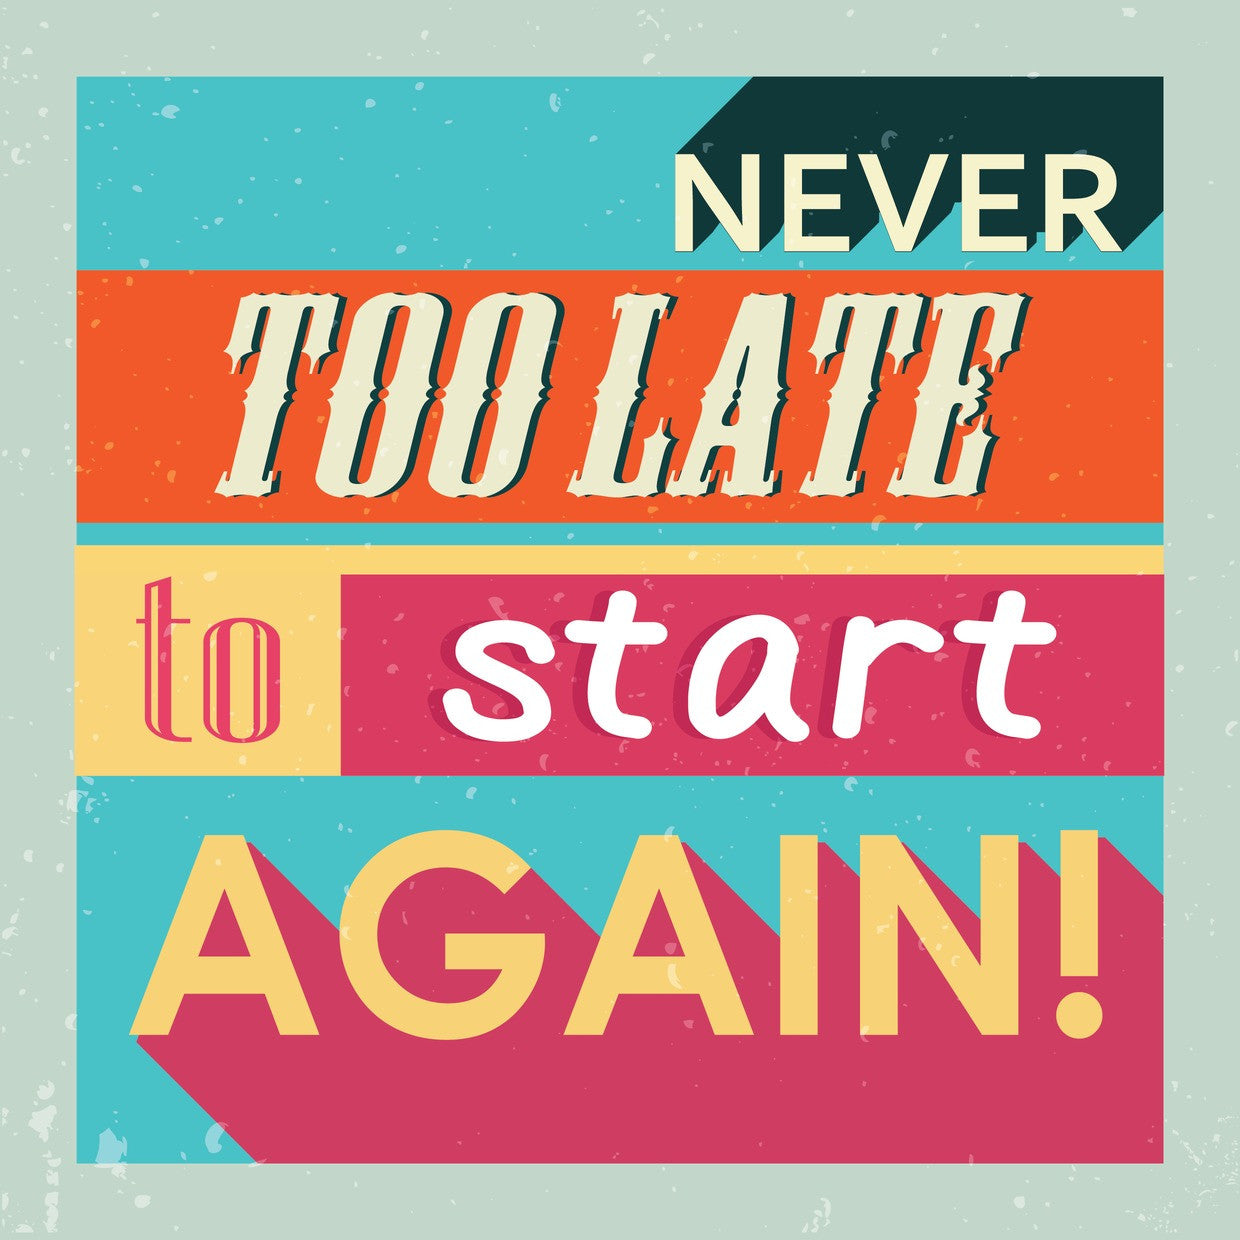 It's Never Too Late To Start Anew